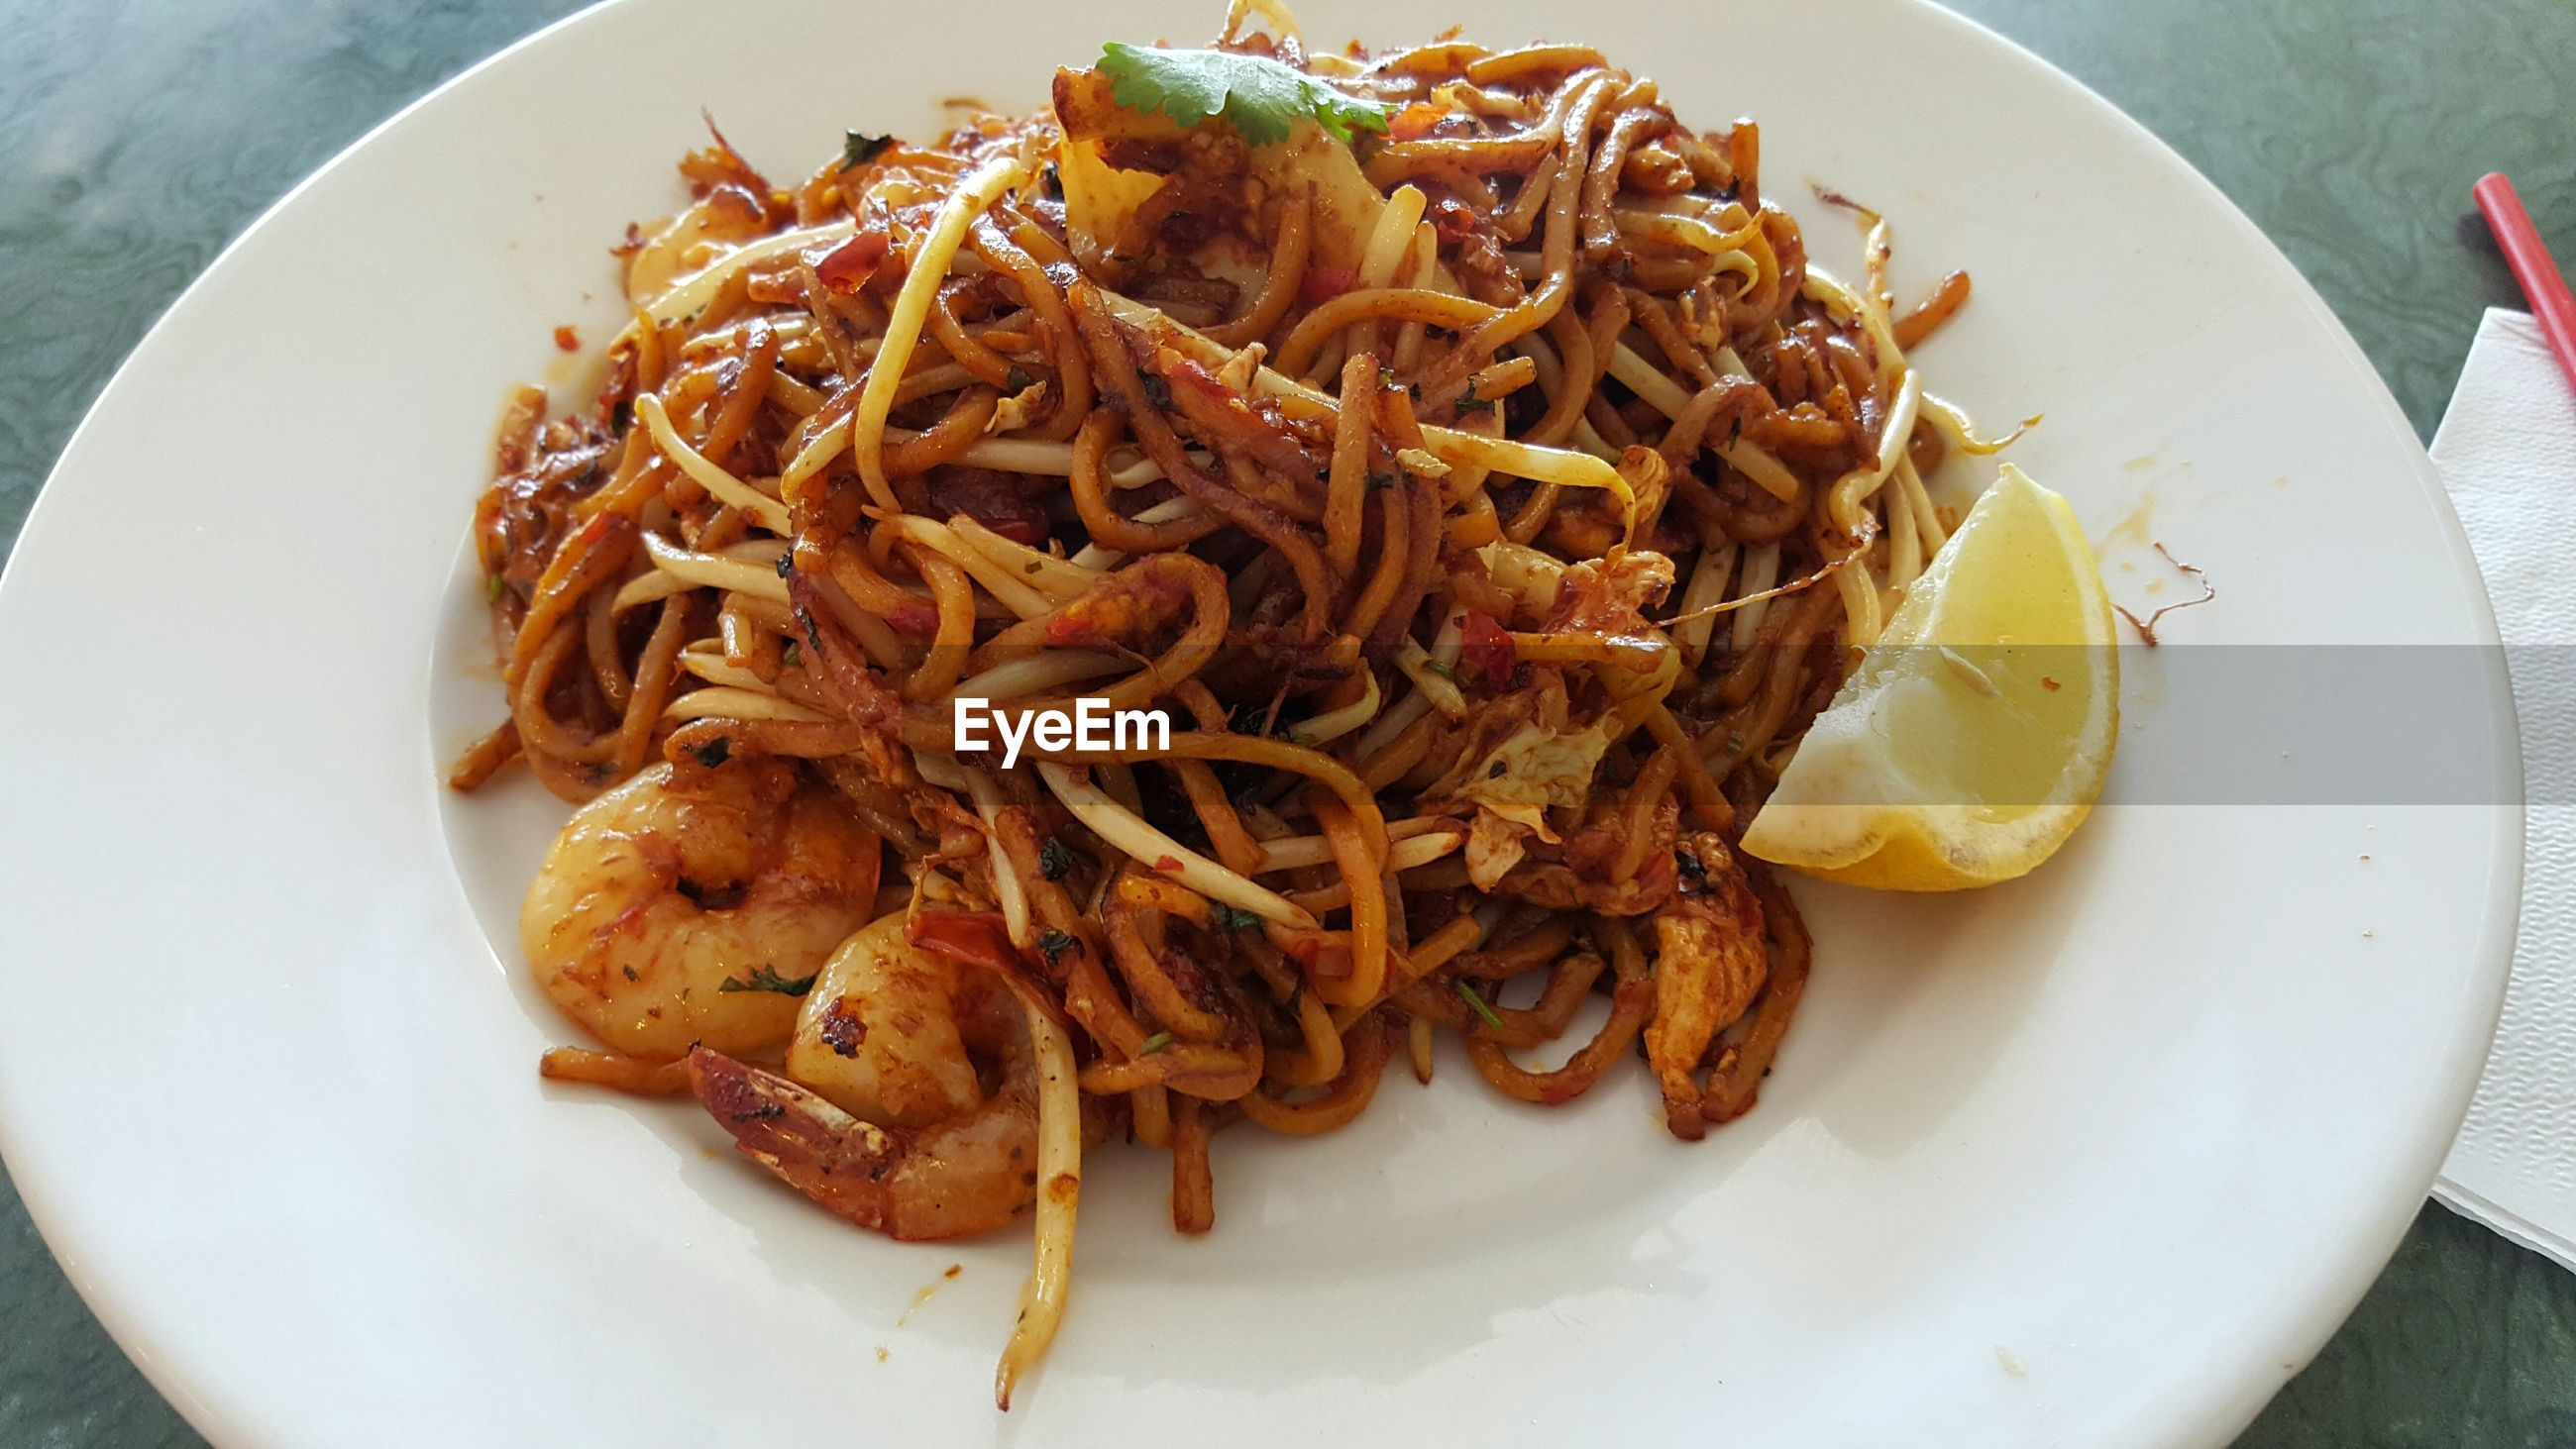 Elevated view of pasta with shrimps on plate